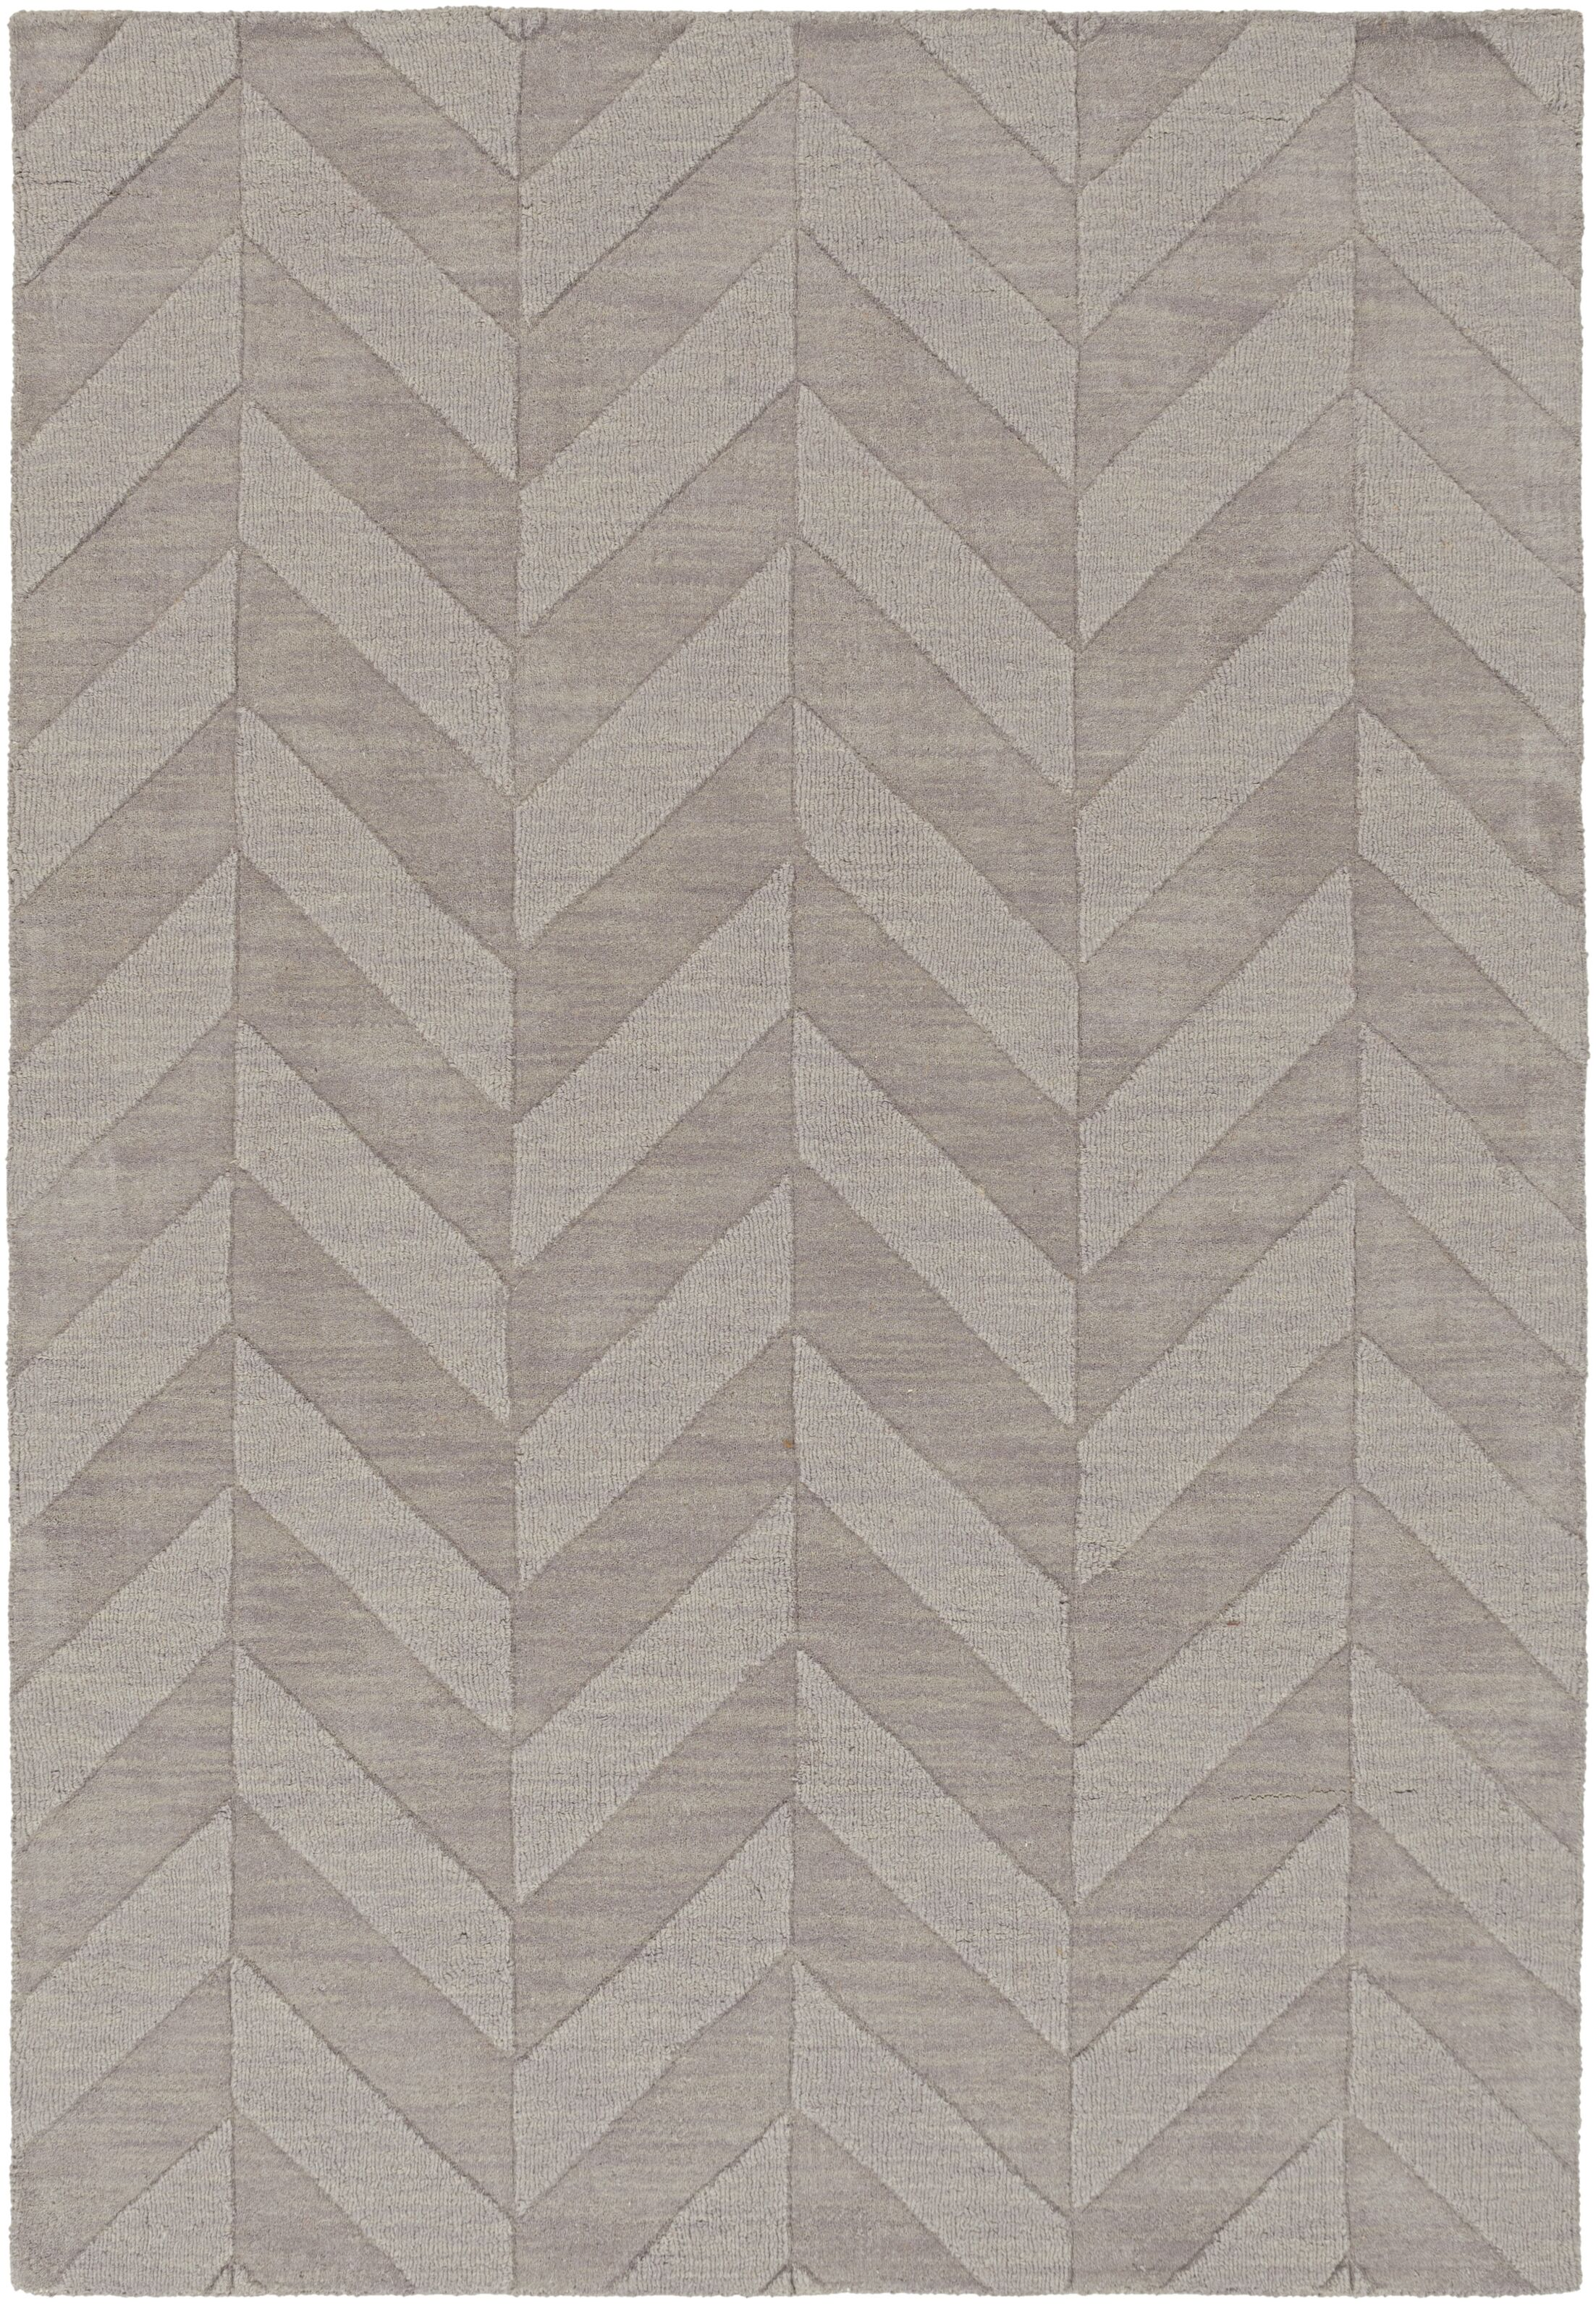 Sunburst Hand Woven Wool Gray Area Rug Rug Size: Rectangle 4' x 6'